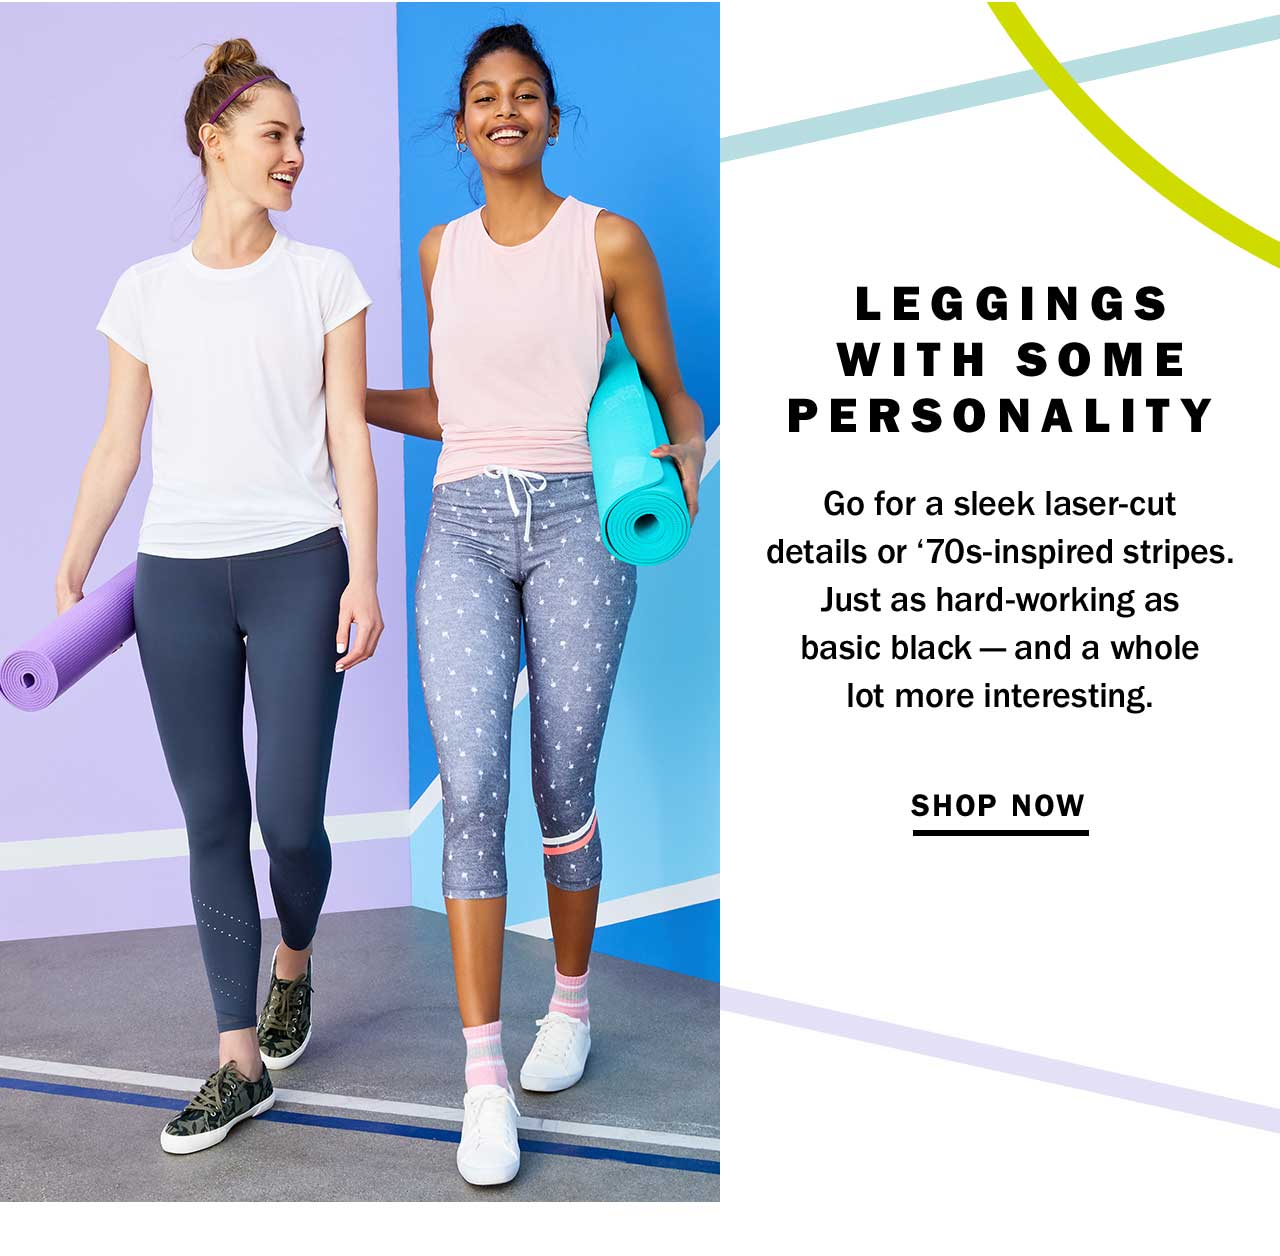 LEGGINGS WITH SOME PERSONALITY | SHOP NOW